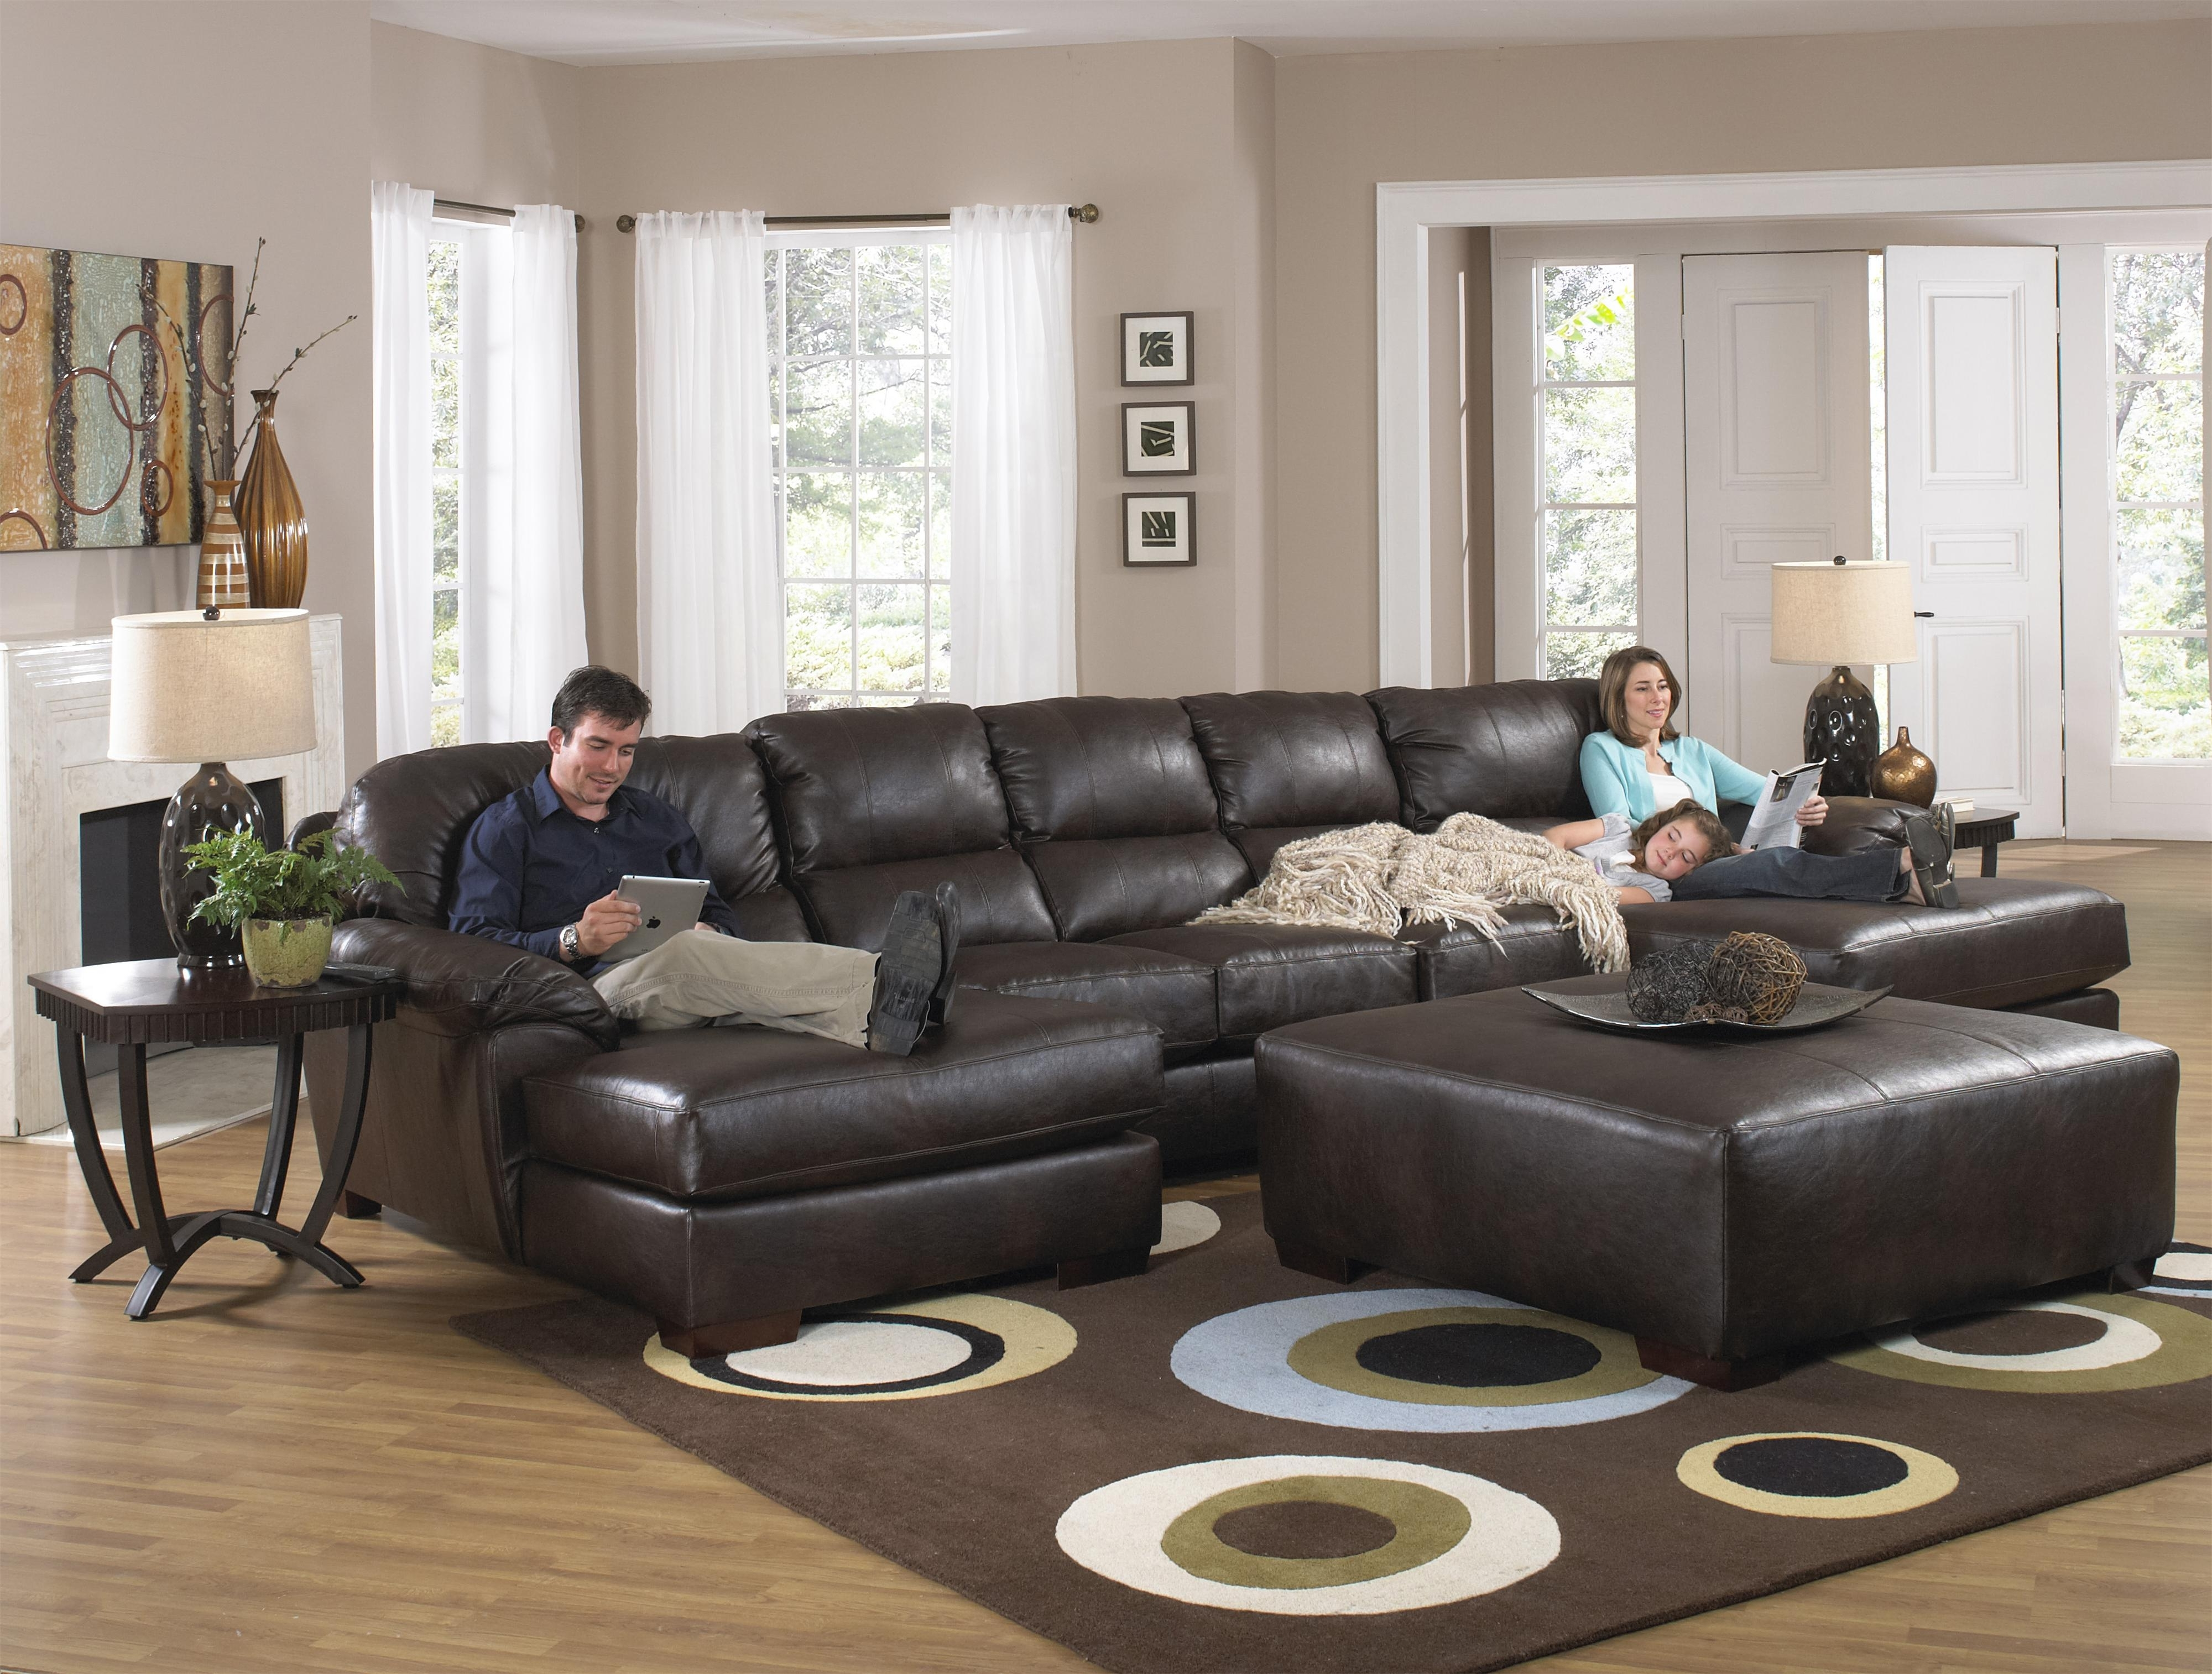 Jackson Furniture Lawson Three Seat Sectional Sofa With Console In Most Recent Chaise Sofa Sectionals (View 3 of 15)